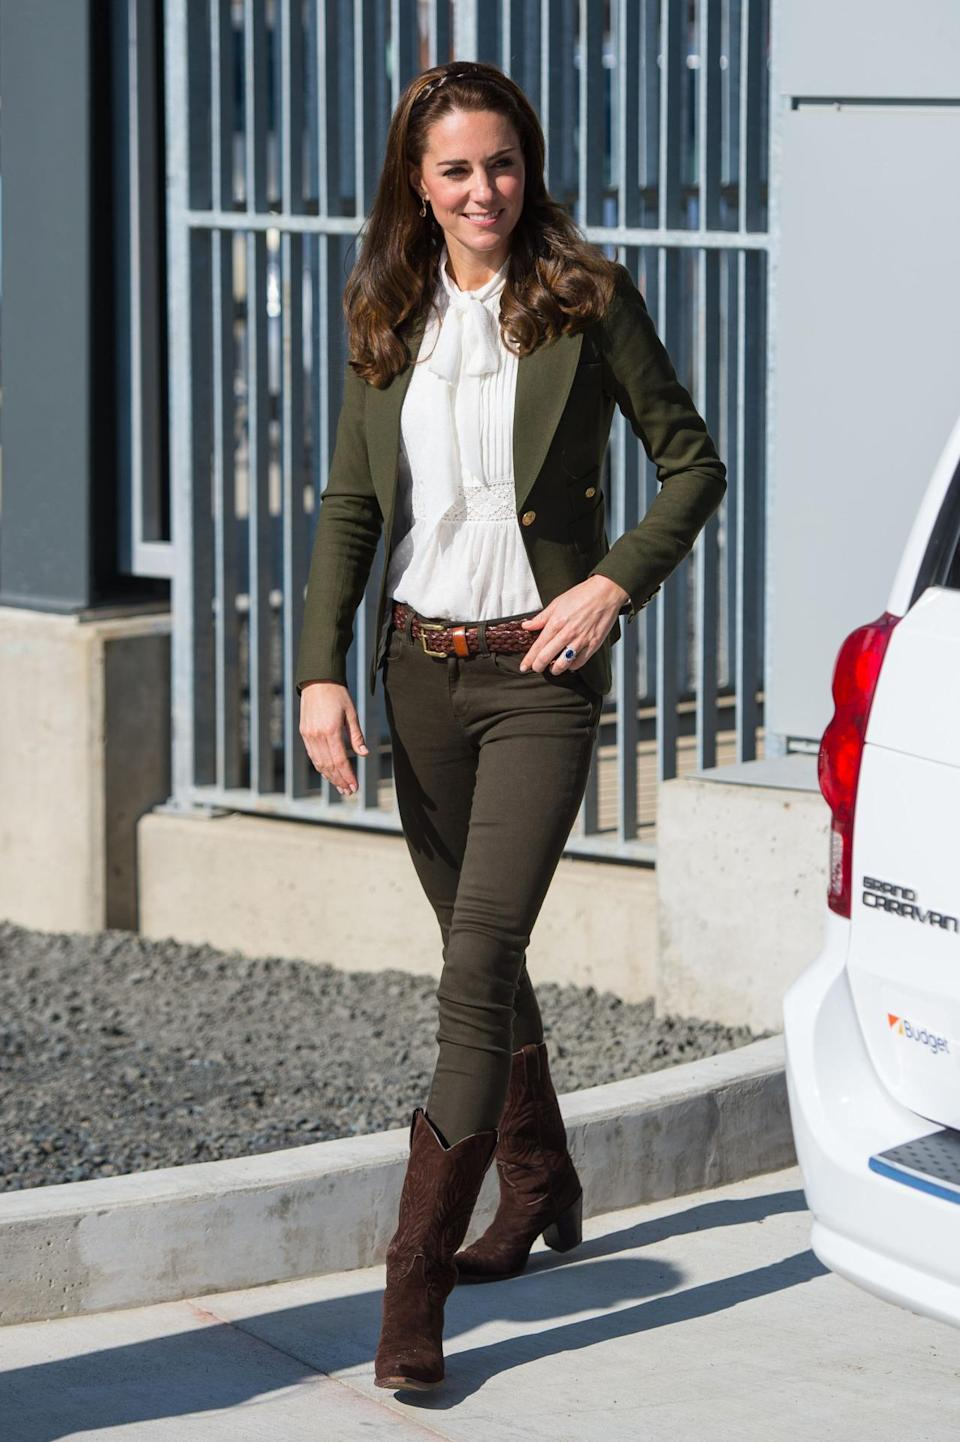 """<p>For a canoe trip, Kate wore an army green blazer by Toronto-based brand, Smythe Les Vests. She paired it with a white lacy blouse designed by Alice Temperley for John Lewis. It costs £79 and is <a href=""""http://www.johnlewis.com/somerset-by-alice-temperley-spot-pretty-blouse/p2891104?colour=Ivory#media-overlay_show&s_afcid=af_136348&awc=1203_1475312729_814bd43227fc7bed5aca3a86c46d9873"""" rel=""""nofollow noopener"""" target=""""_blank"""" data-ylk=""""slk:still available online"""" class=""""link rapid-noclick-resp"""">still available online</a> - but hurry. The rest of her outfit consisted of Zara jeans and suede cowboy boots from R Soles. </p><p><i>[Photo: PA]</i></p>"""